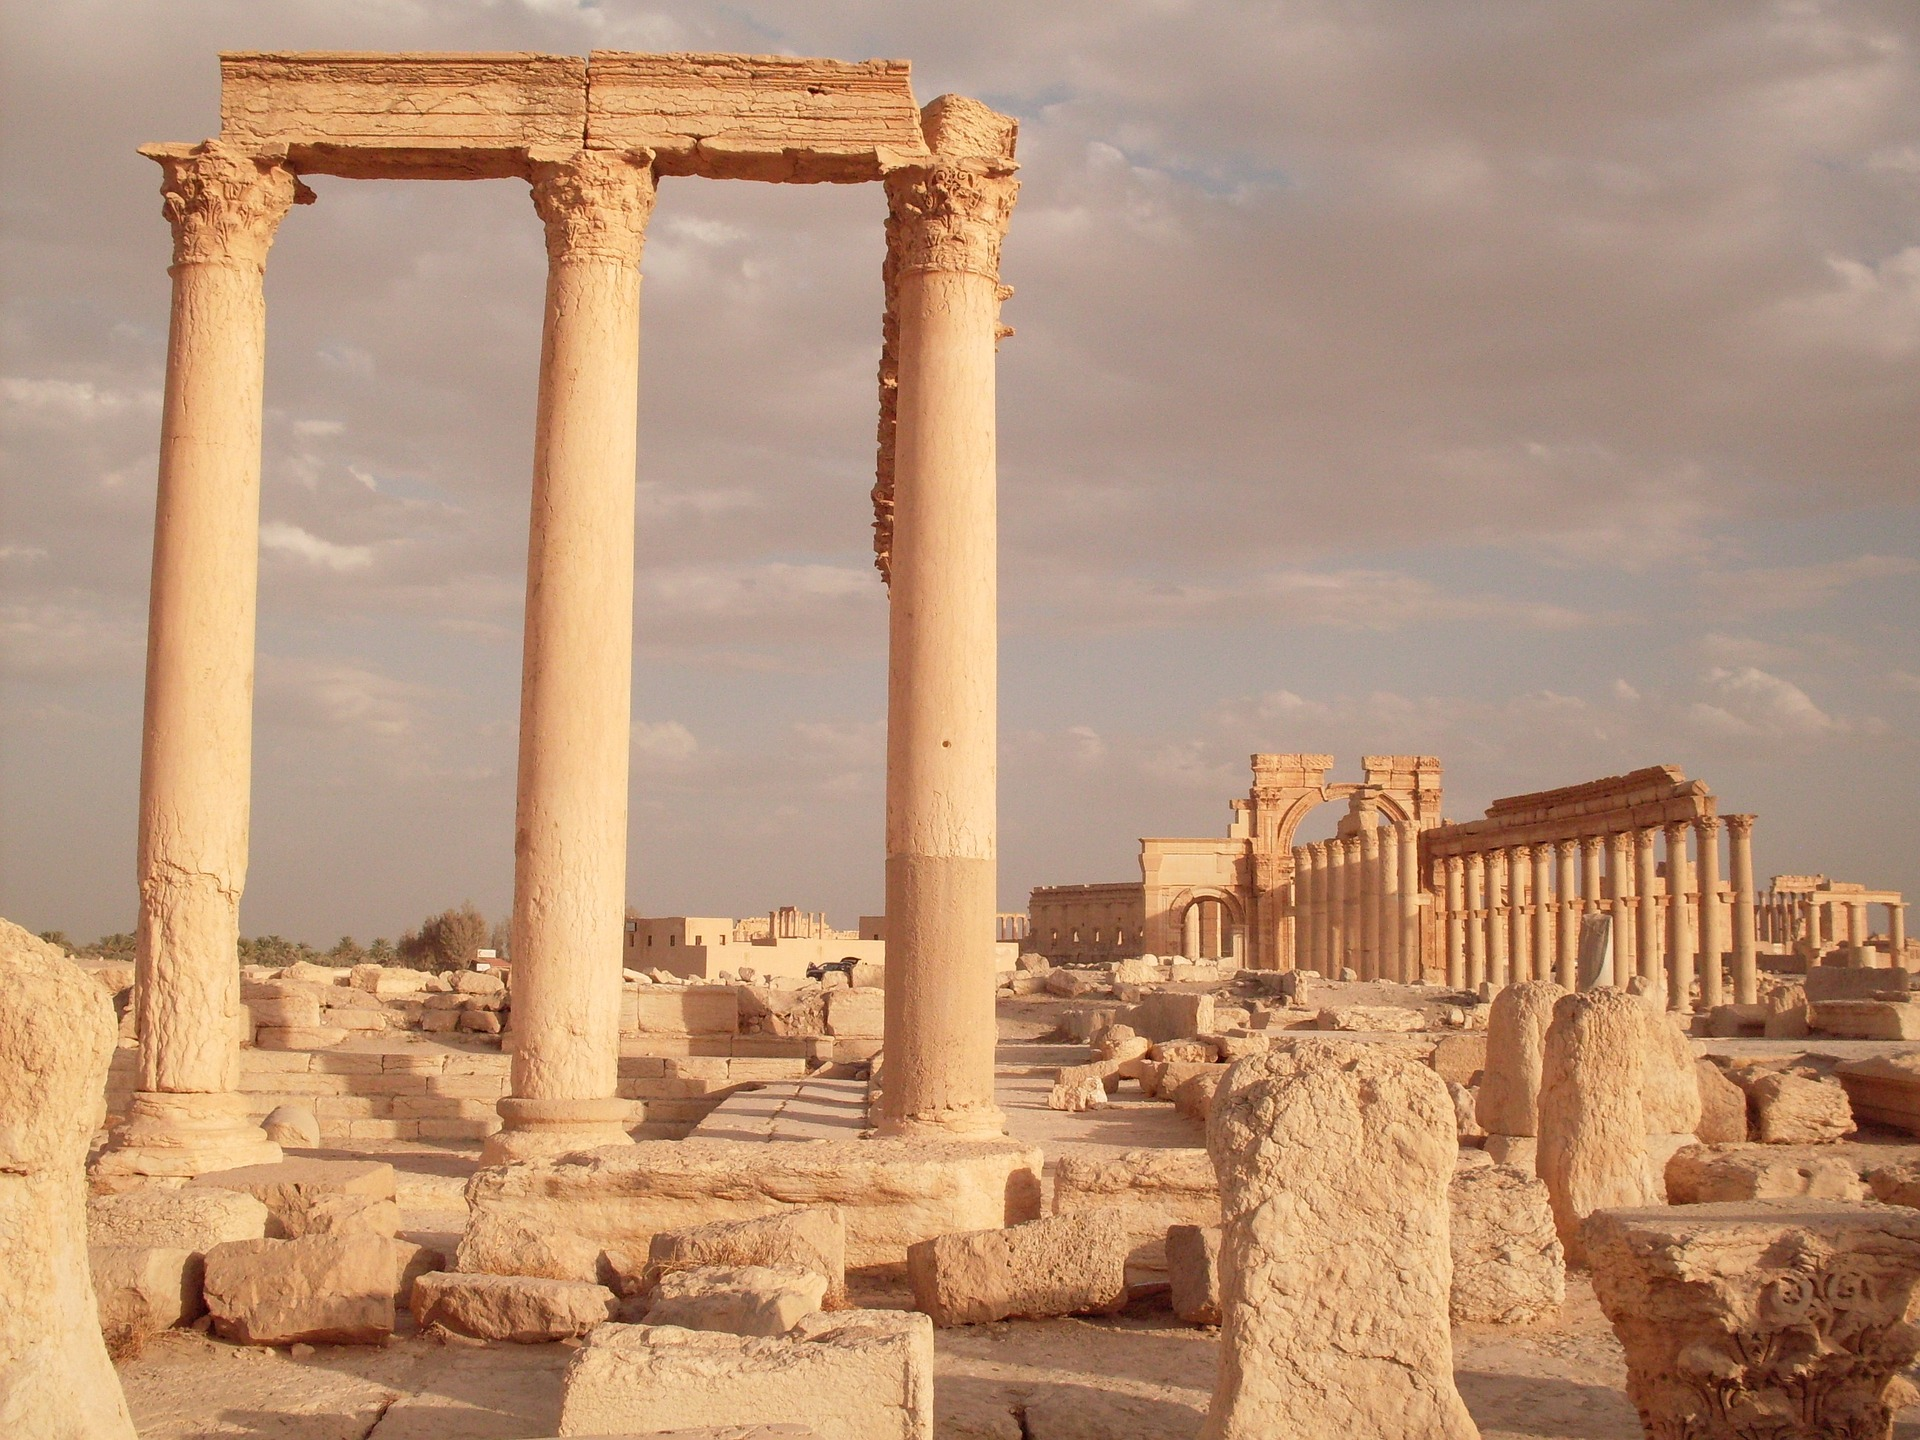 The historic site of Palmyra in Syria.